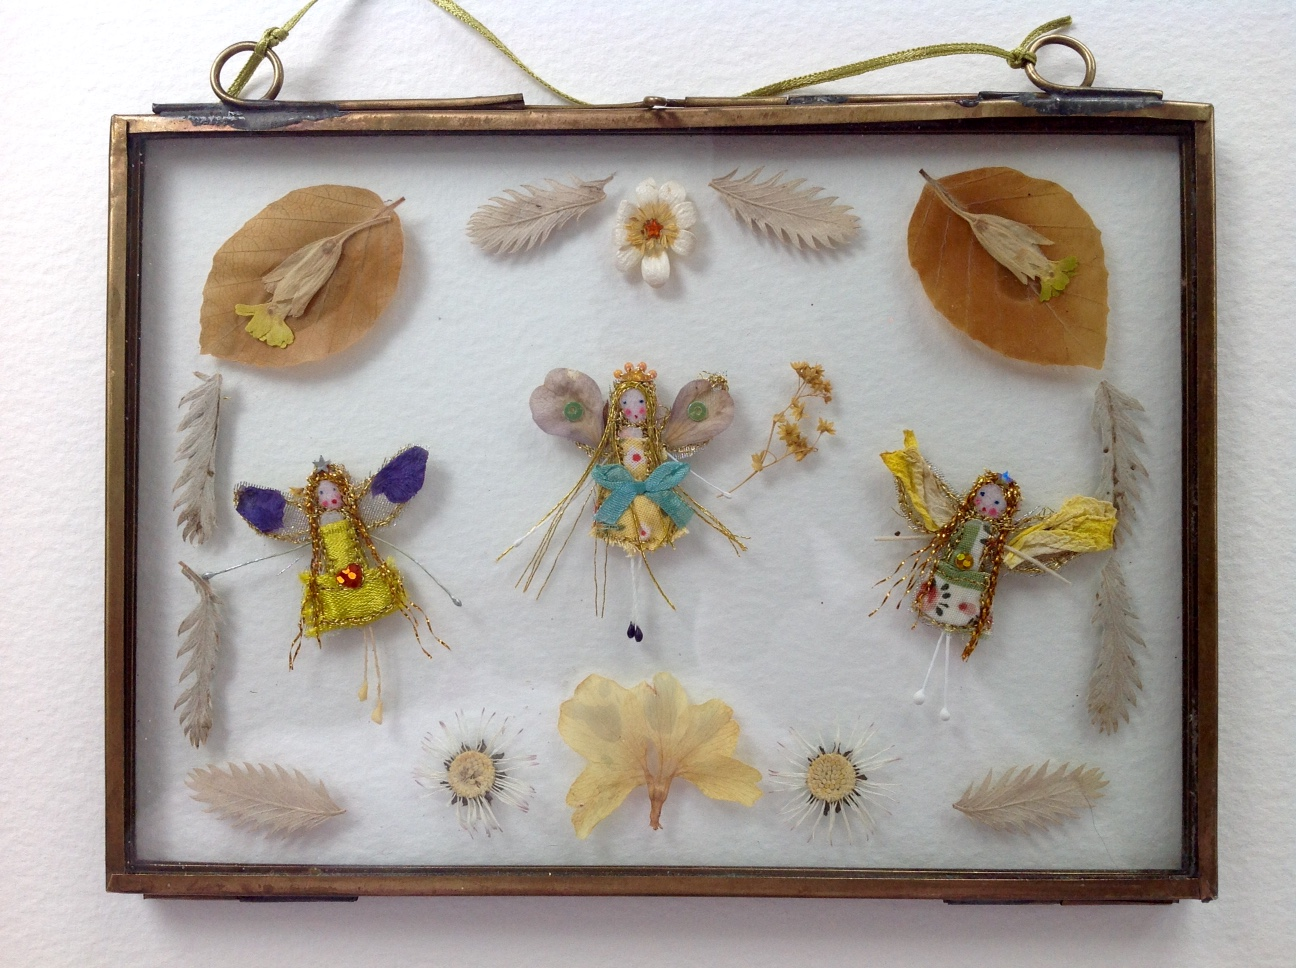 17.5x12.5 cm brass framed fairies. with dried cowslips, daisies and beech leaves. £35 plus £3 p&p.